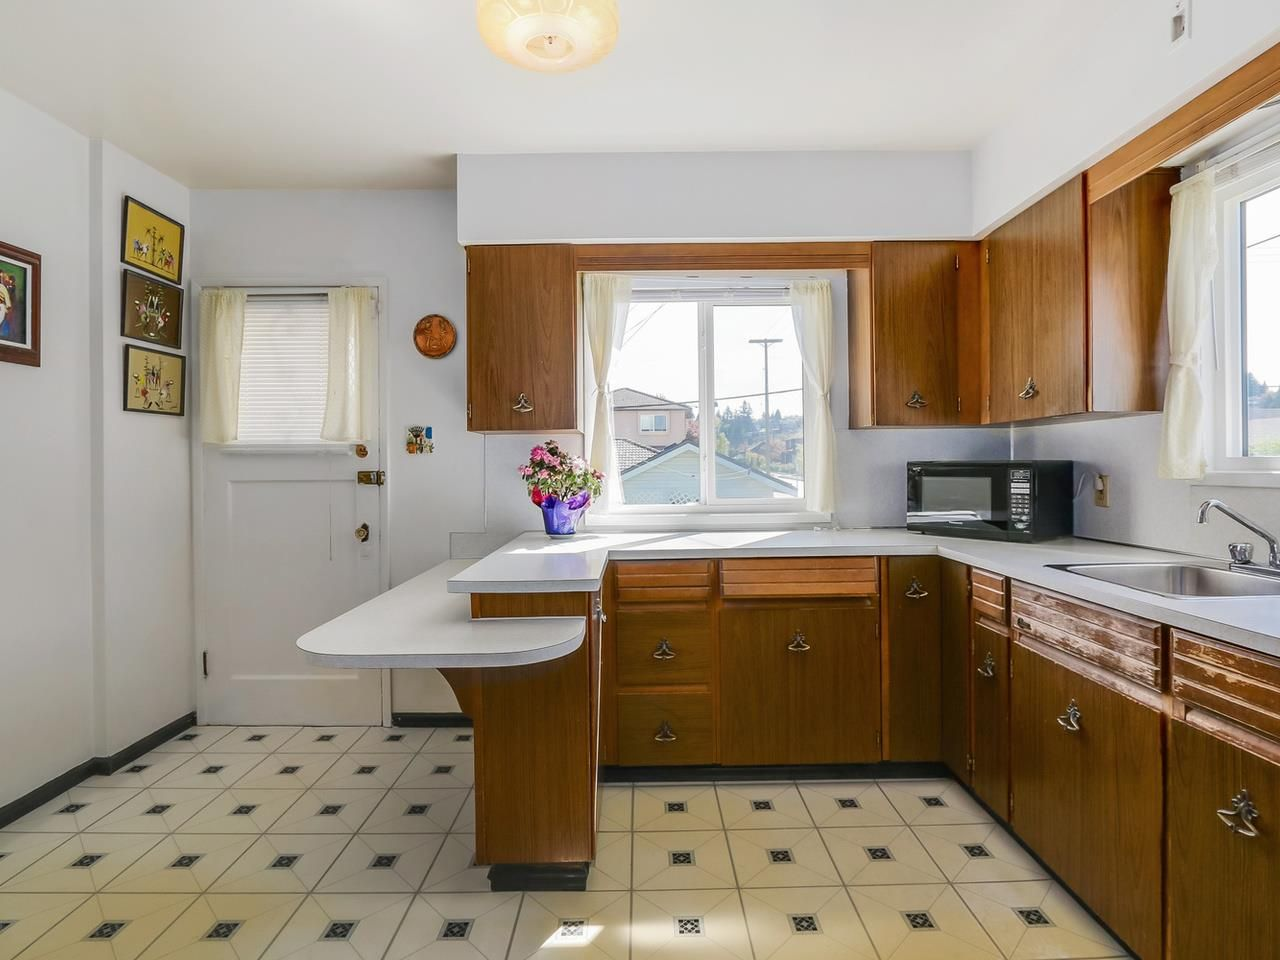 Photo 10: Photos: 2796 W 21ST Avenue in Vancouver: Arbutus House for sale (Vancouver West)  : MLS®# R2078868